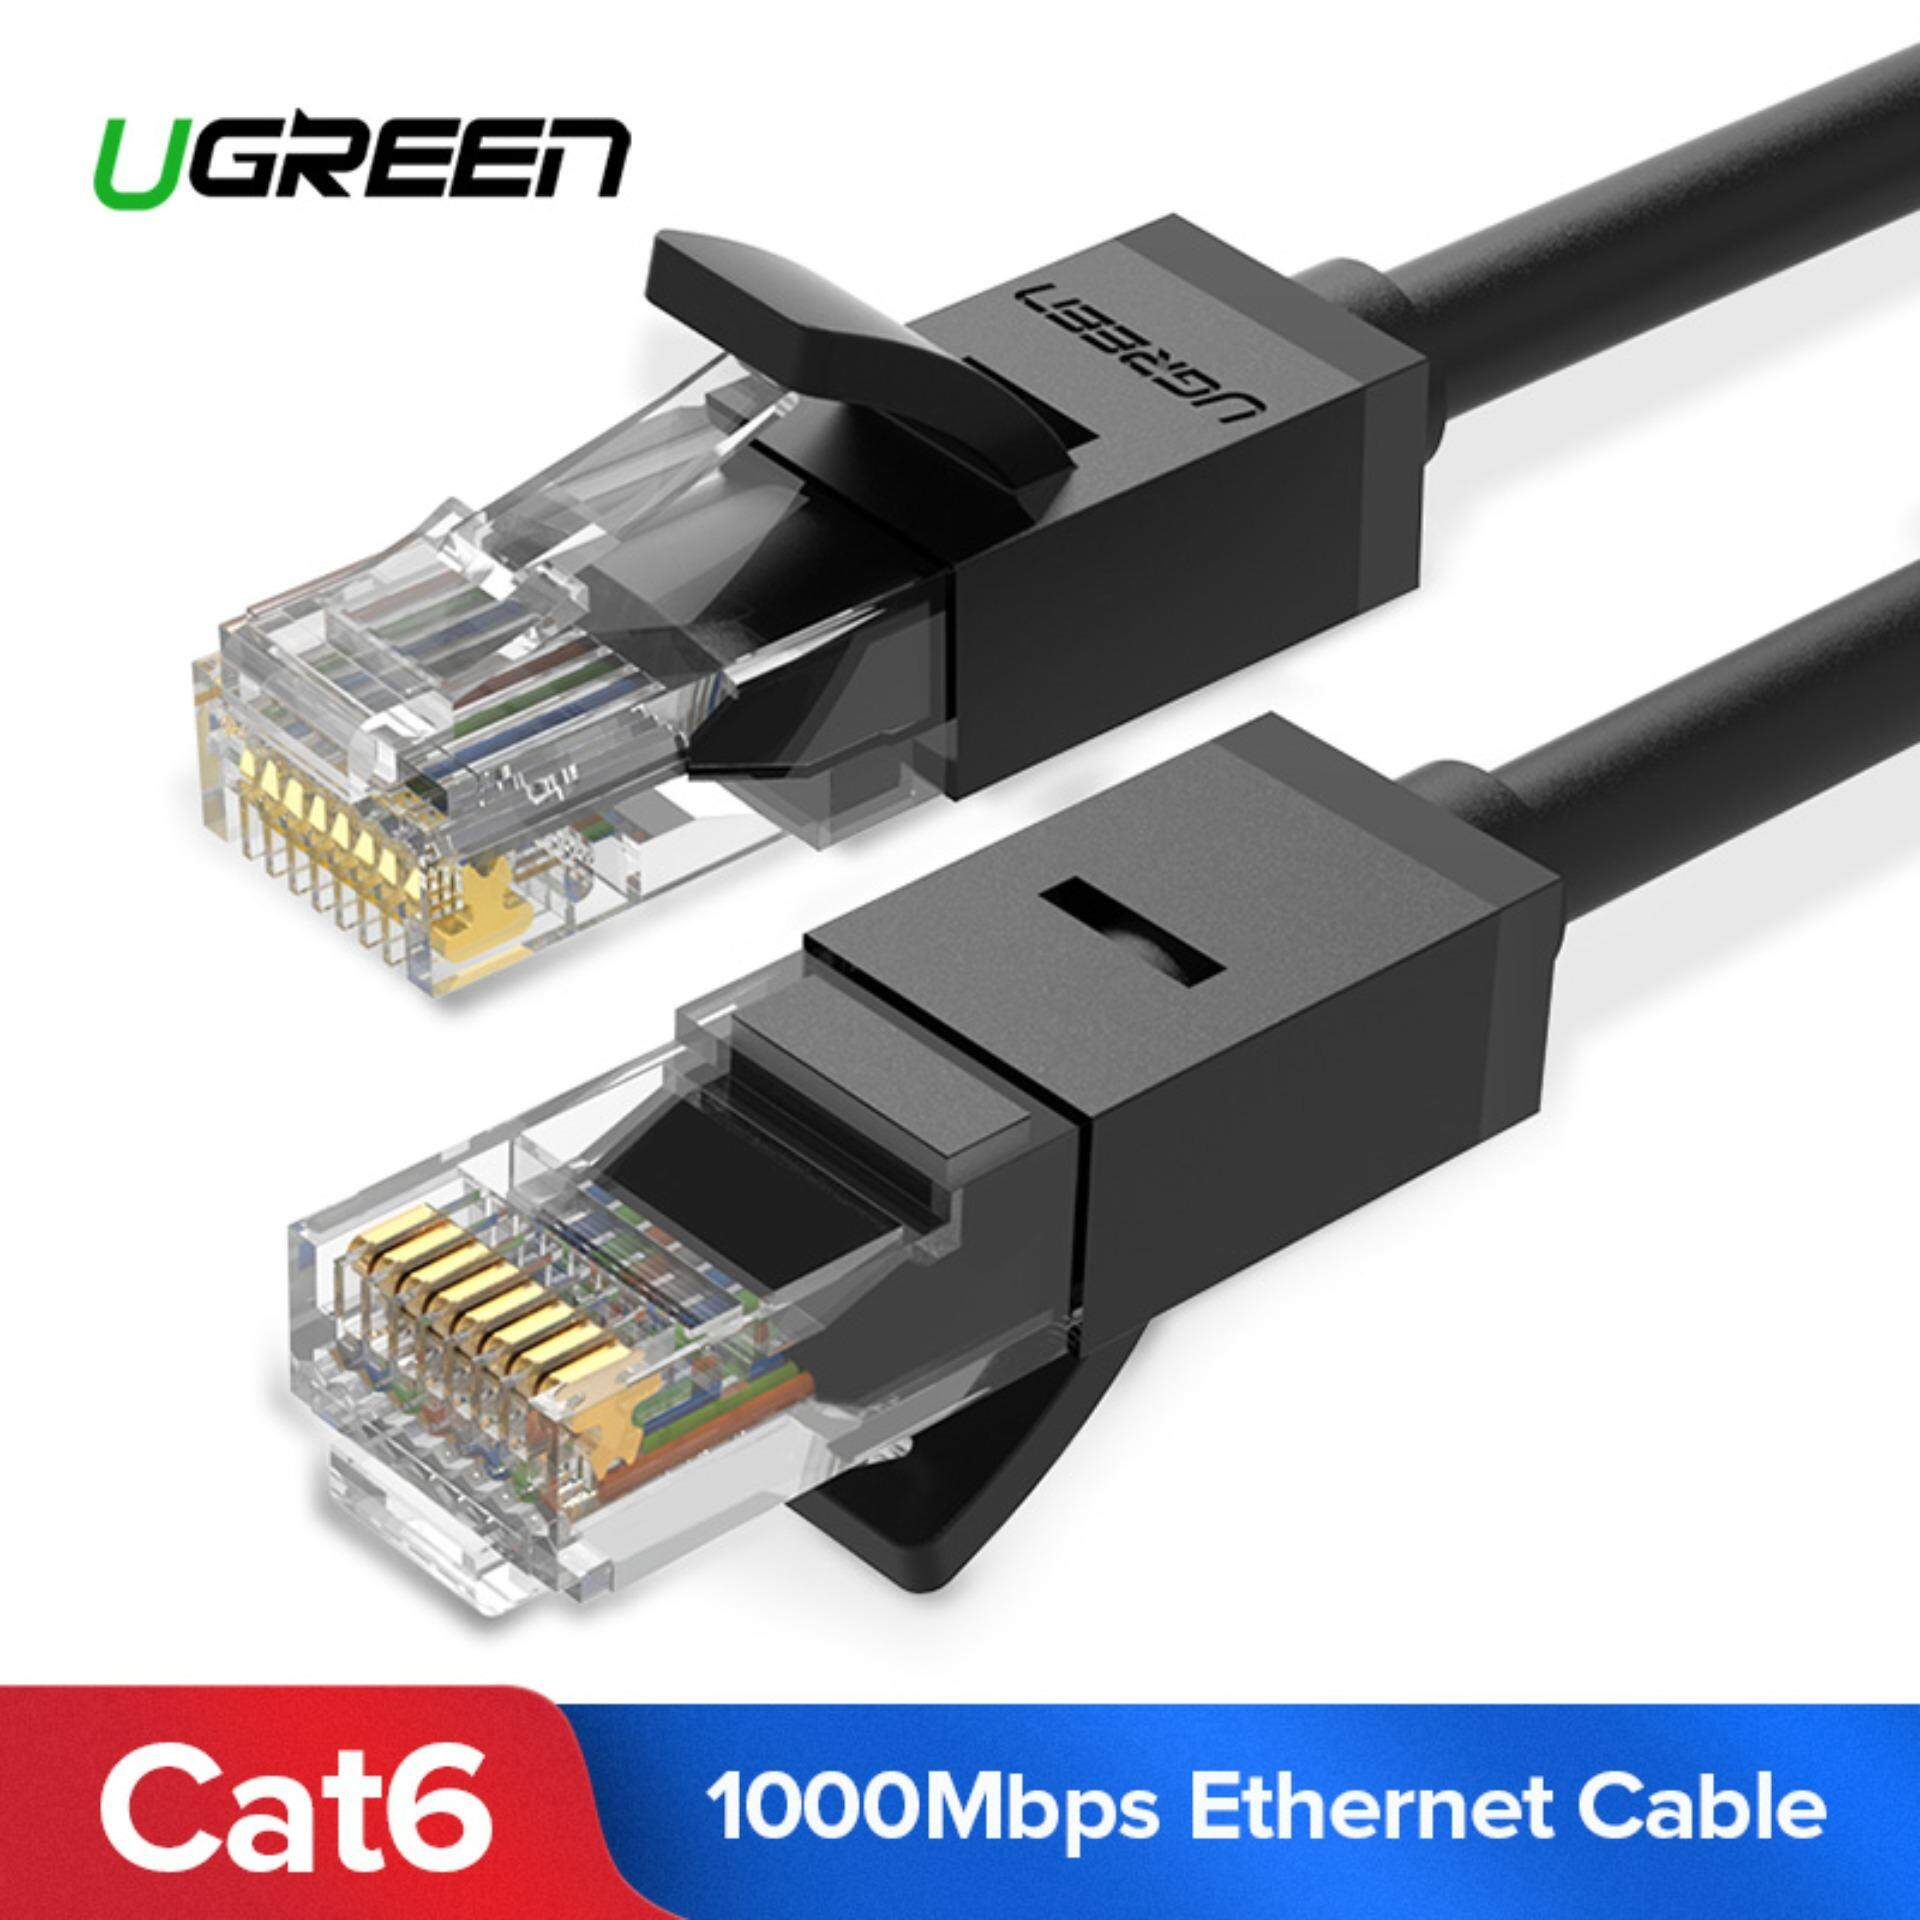 Computer Laptops Adapters And Cables For The Best Prices In Malaysia Kabel Hdmi To 10meter Tv Monito Kamera Cctv Laptop Ethernet